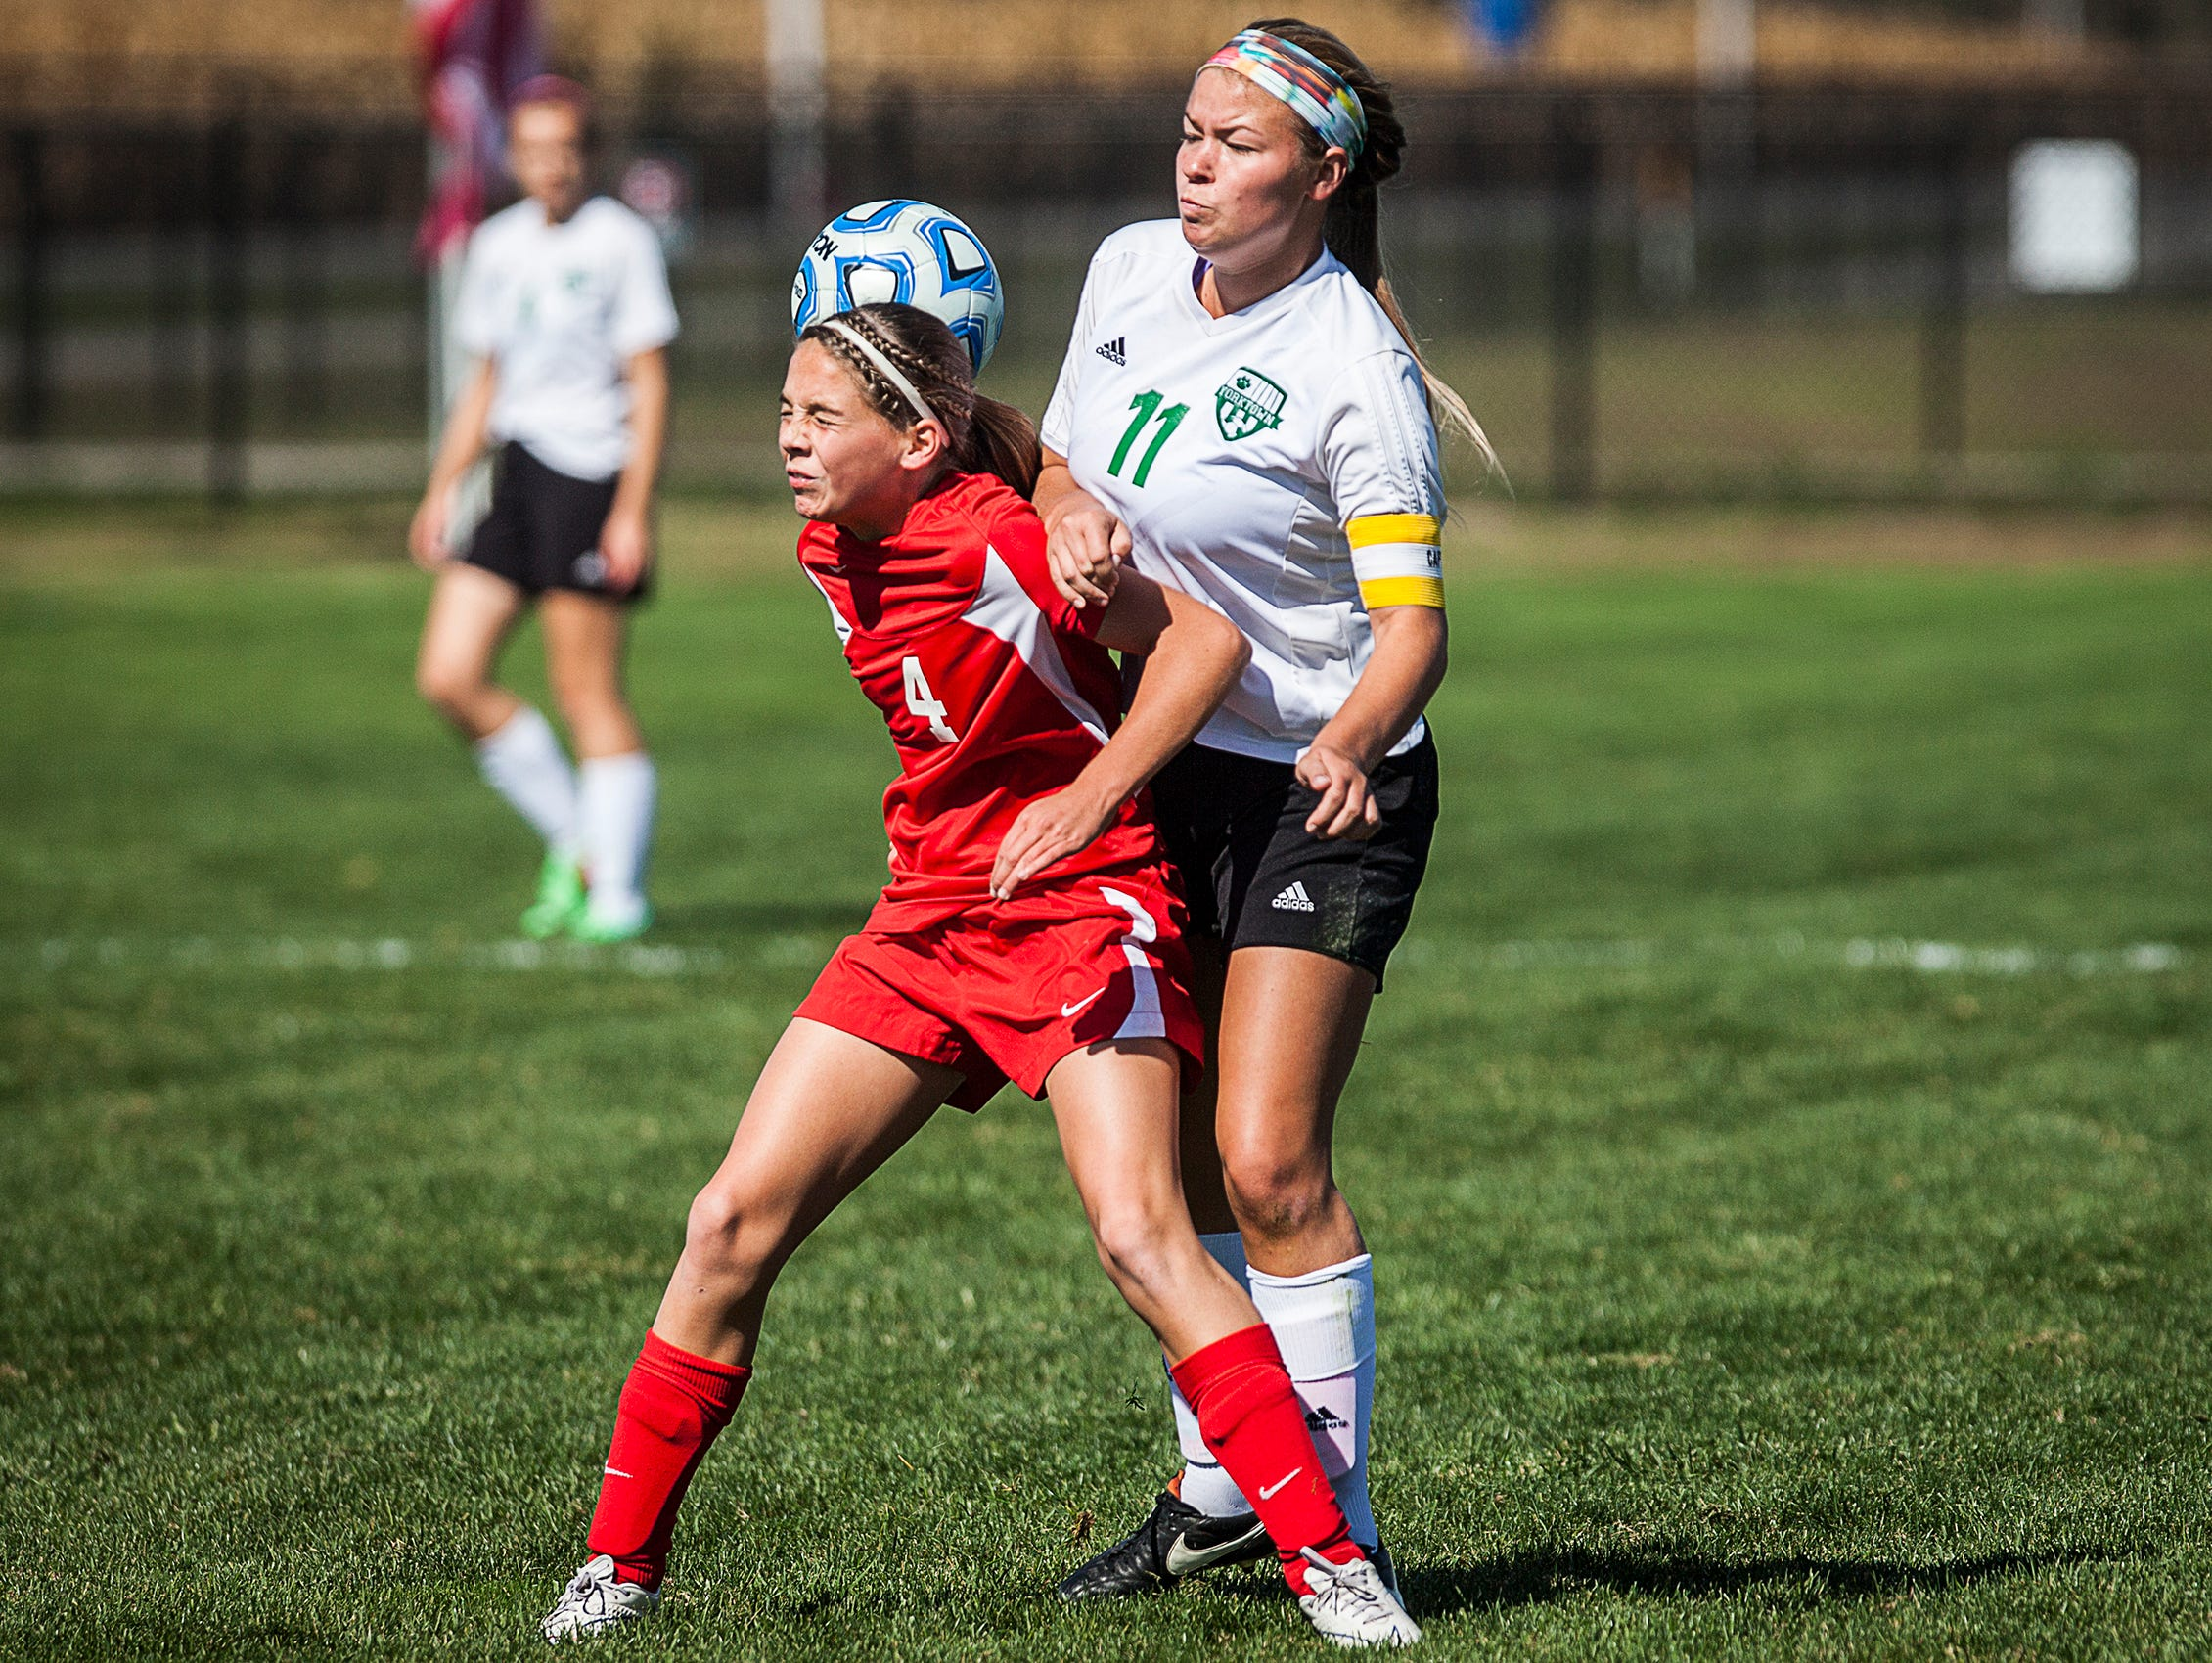 Yorktown's Katie Nixon and Jay County's Kendra Muhlenkamp struggle for possession during their game at the Yorktown Sports Park on Saturday, Oct. 10, 2015.